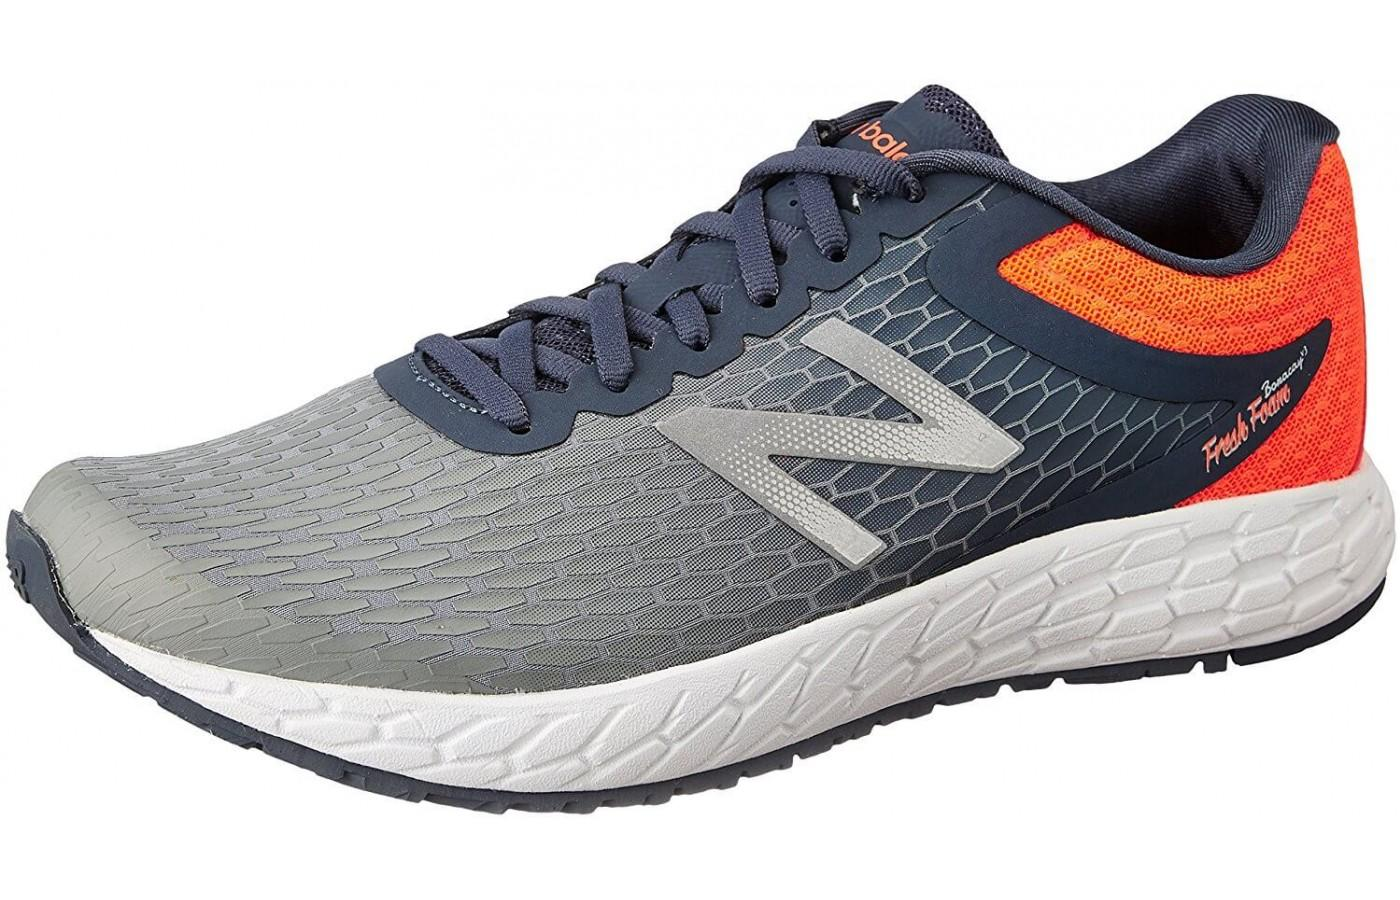 The New Balance Fresh Foam Boracay V3 makes key improvements to the first two iterations of the shoe.